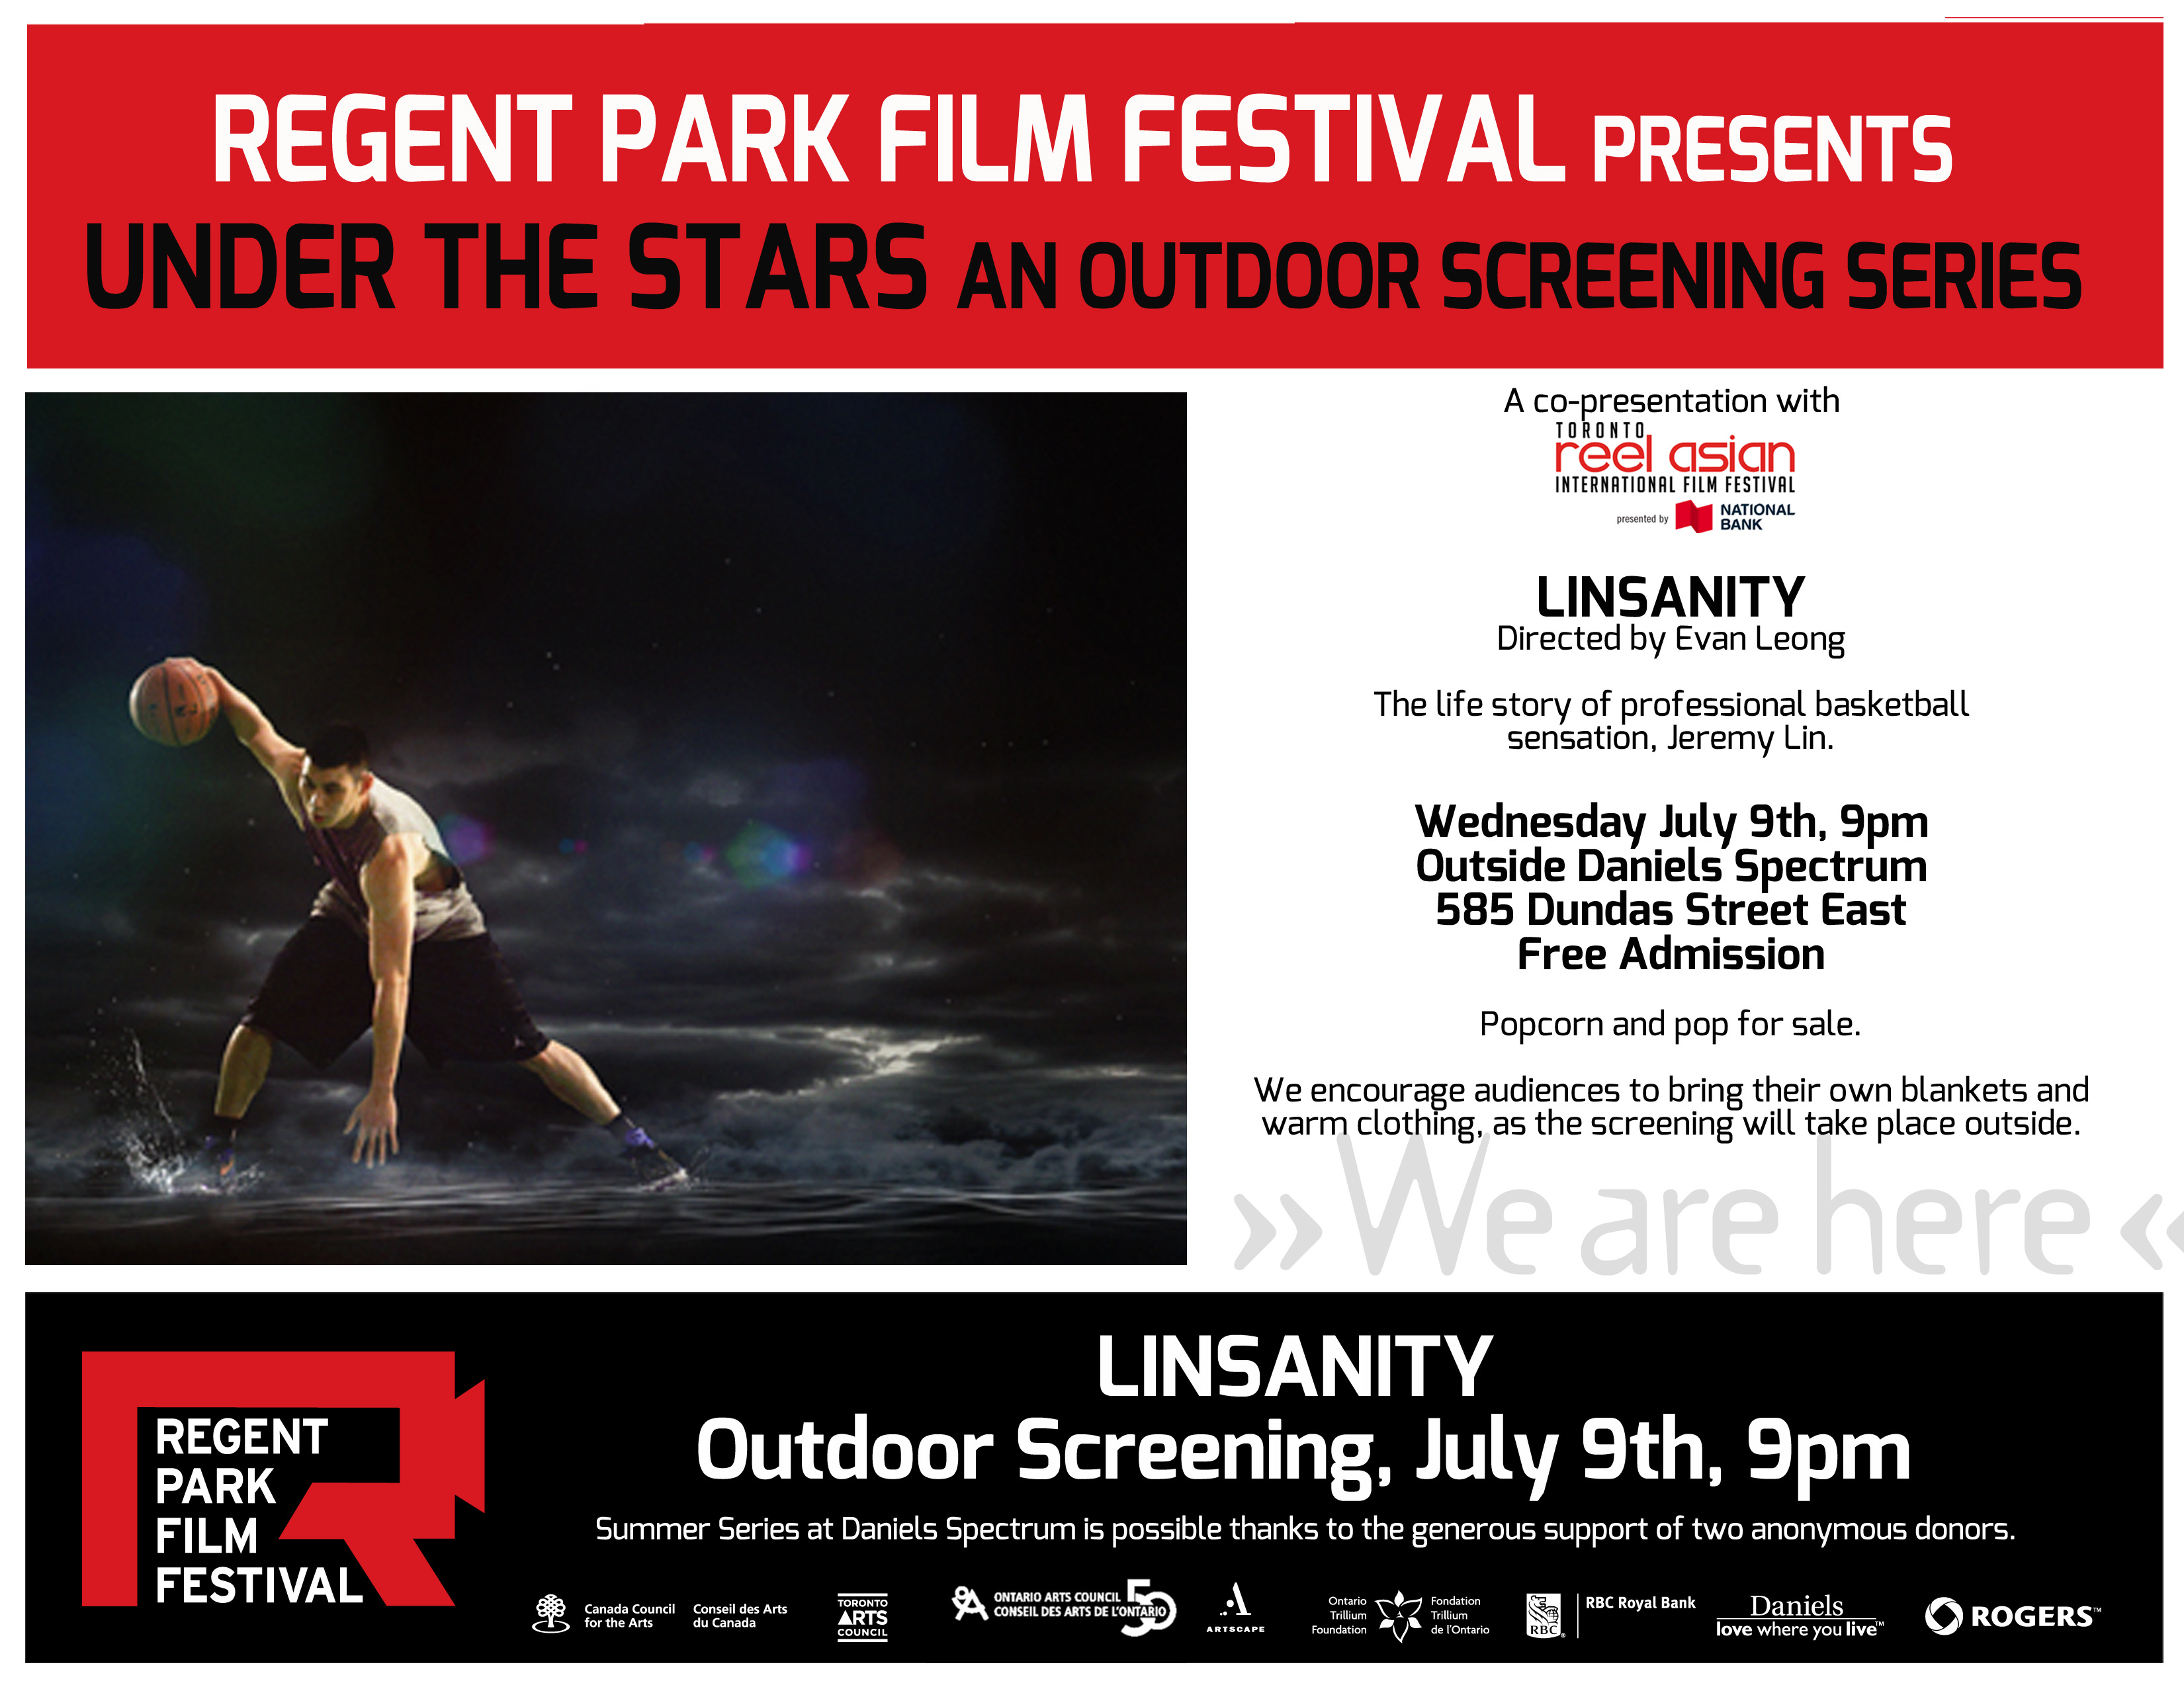 linsanity at rpff